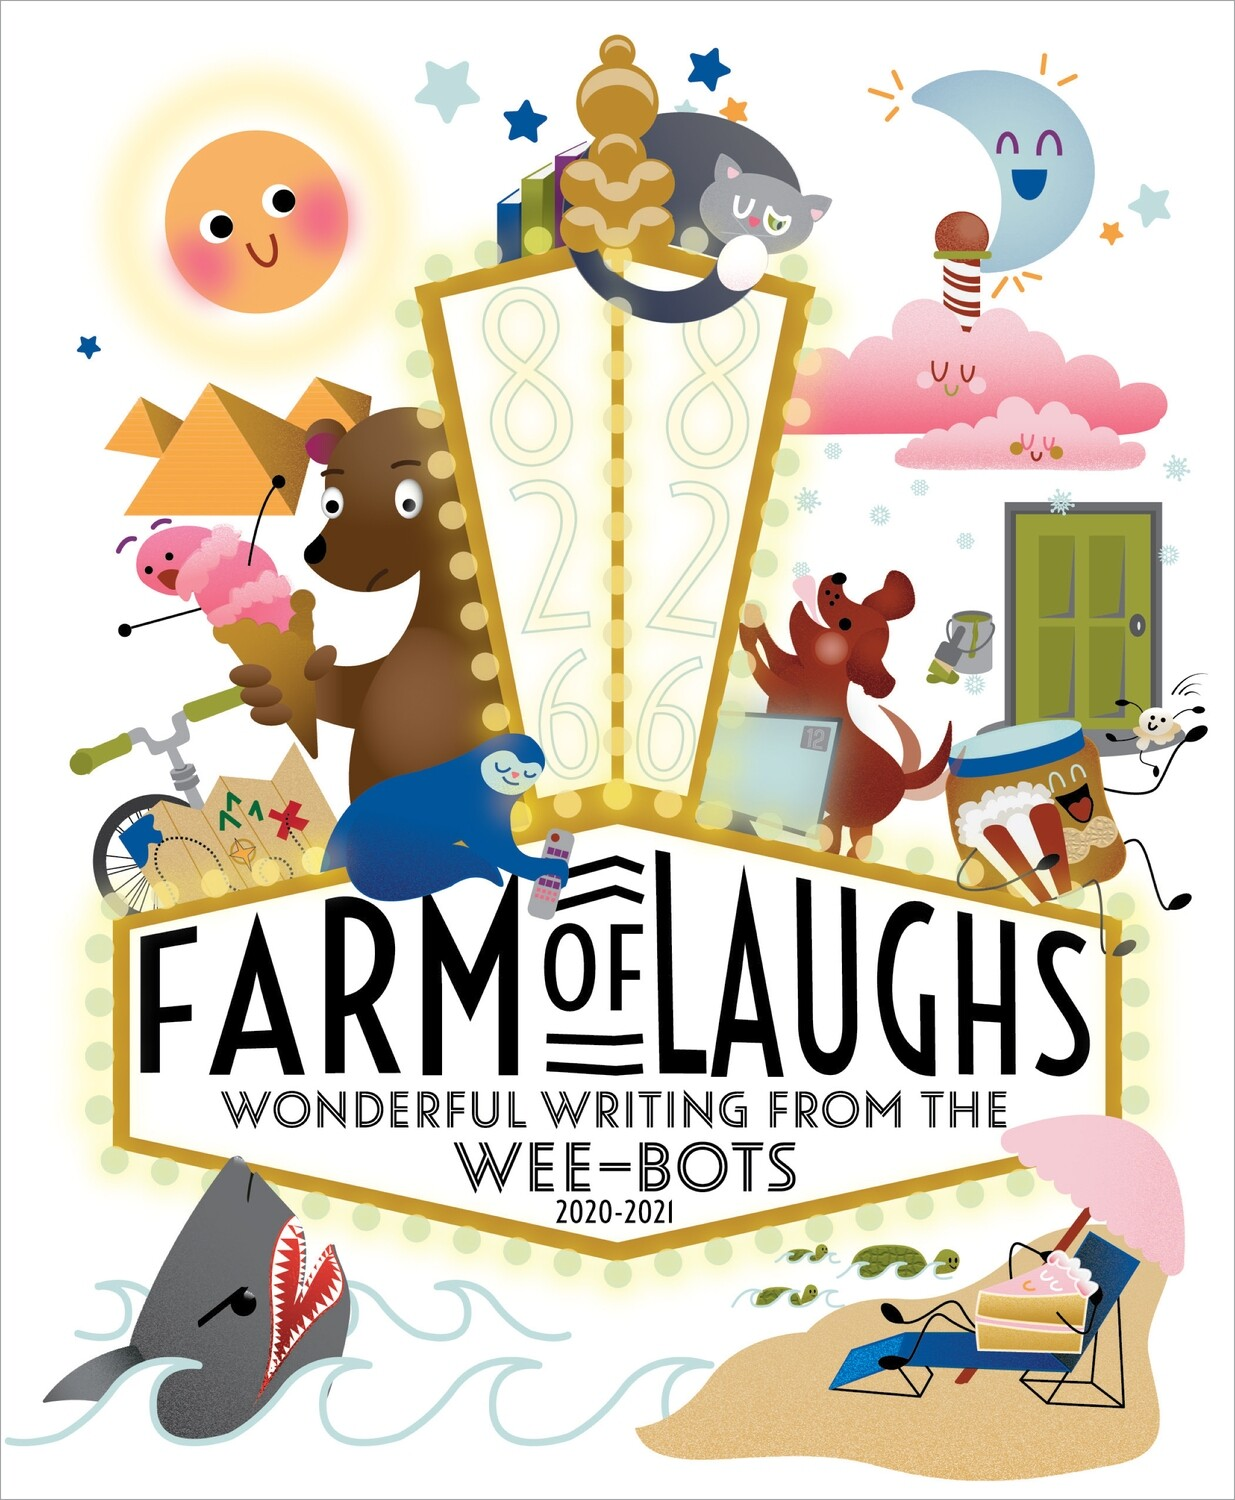 Farm of Laughs—Wonderful Writing from the Wee-Bots